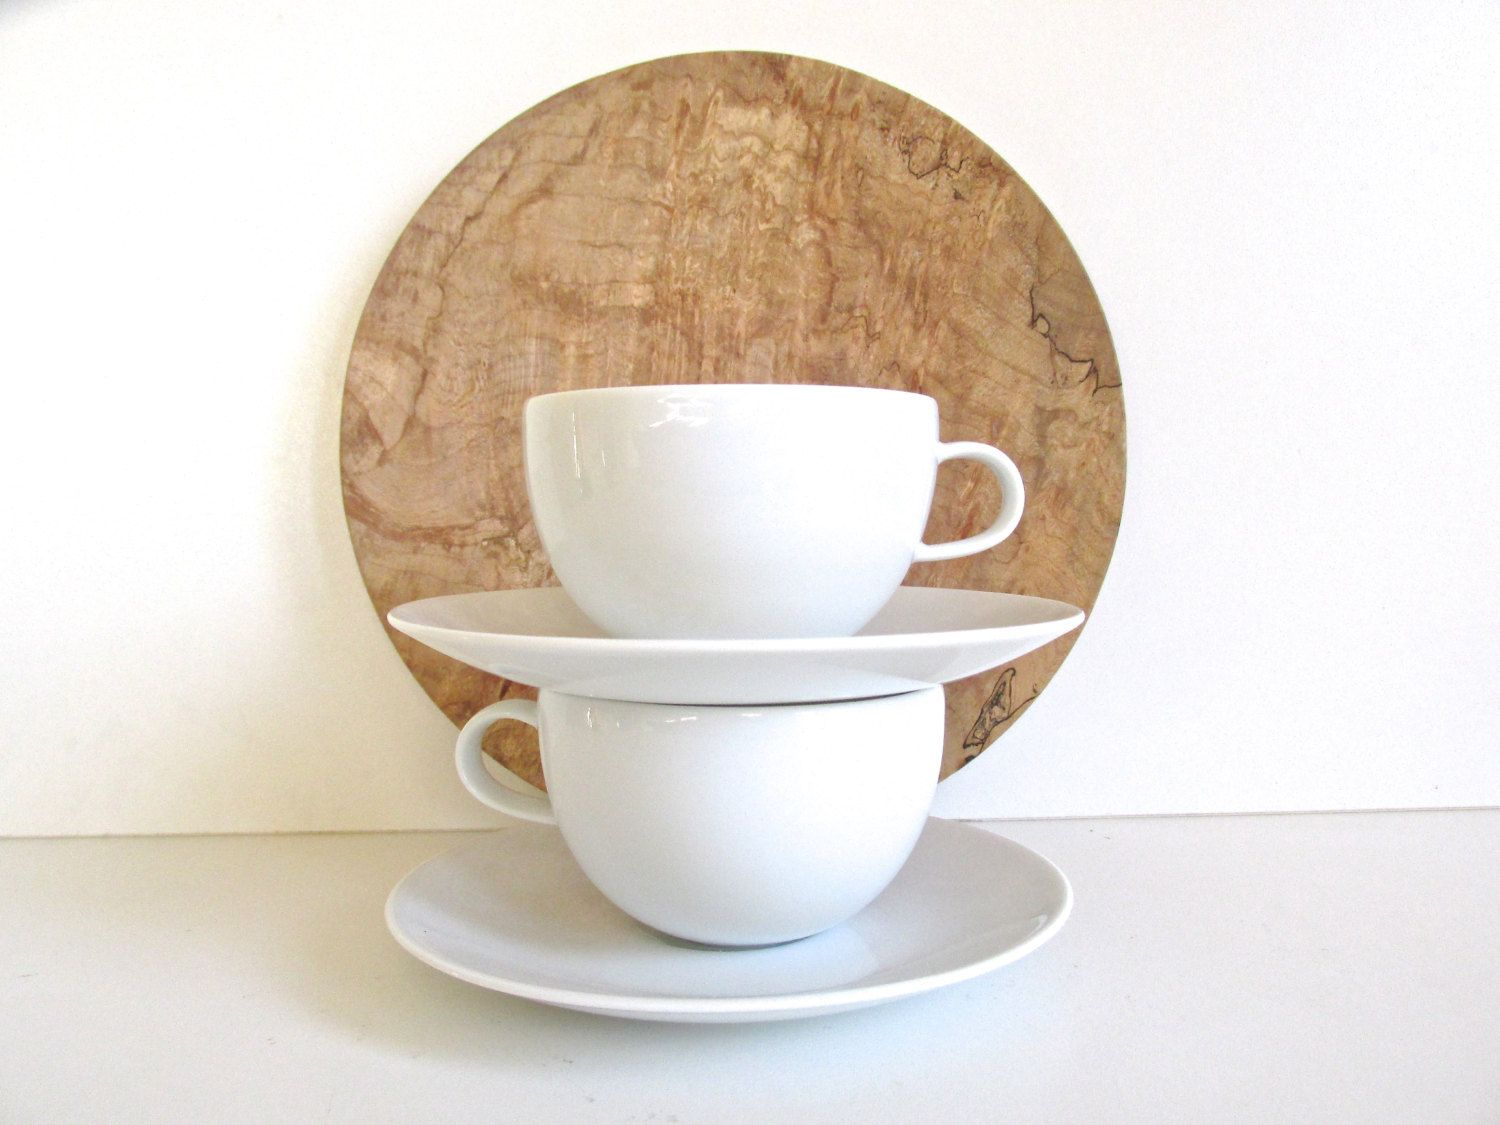 Set of 2 post modern studio nova tivoli white cup and saucers set of 2 post modern studio nova tivoli white cup and saucers minimalist espresso cup reviewsmspy